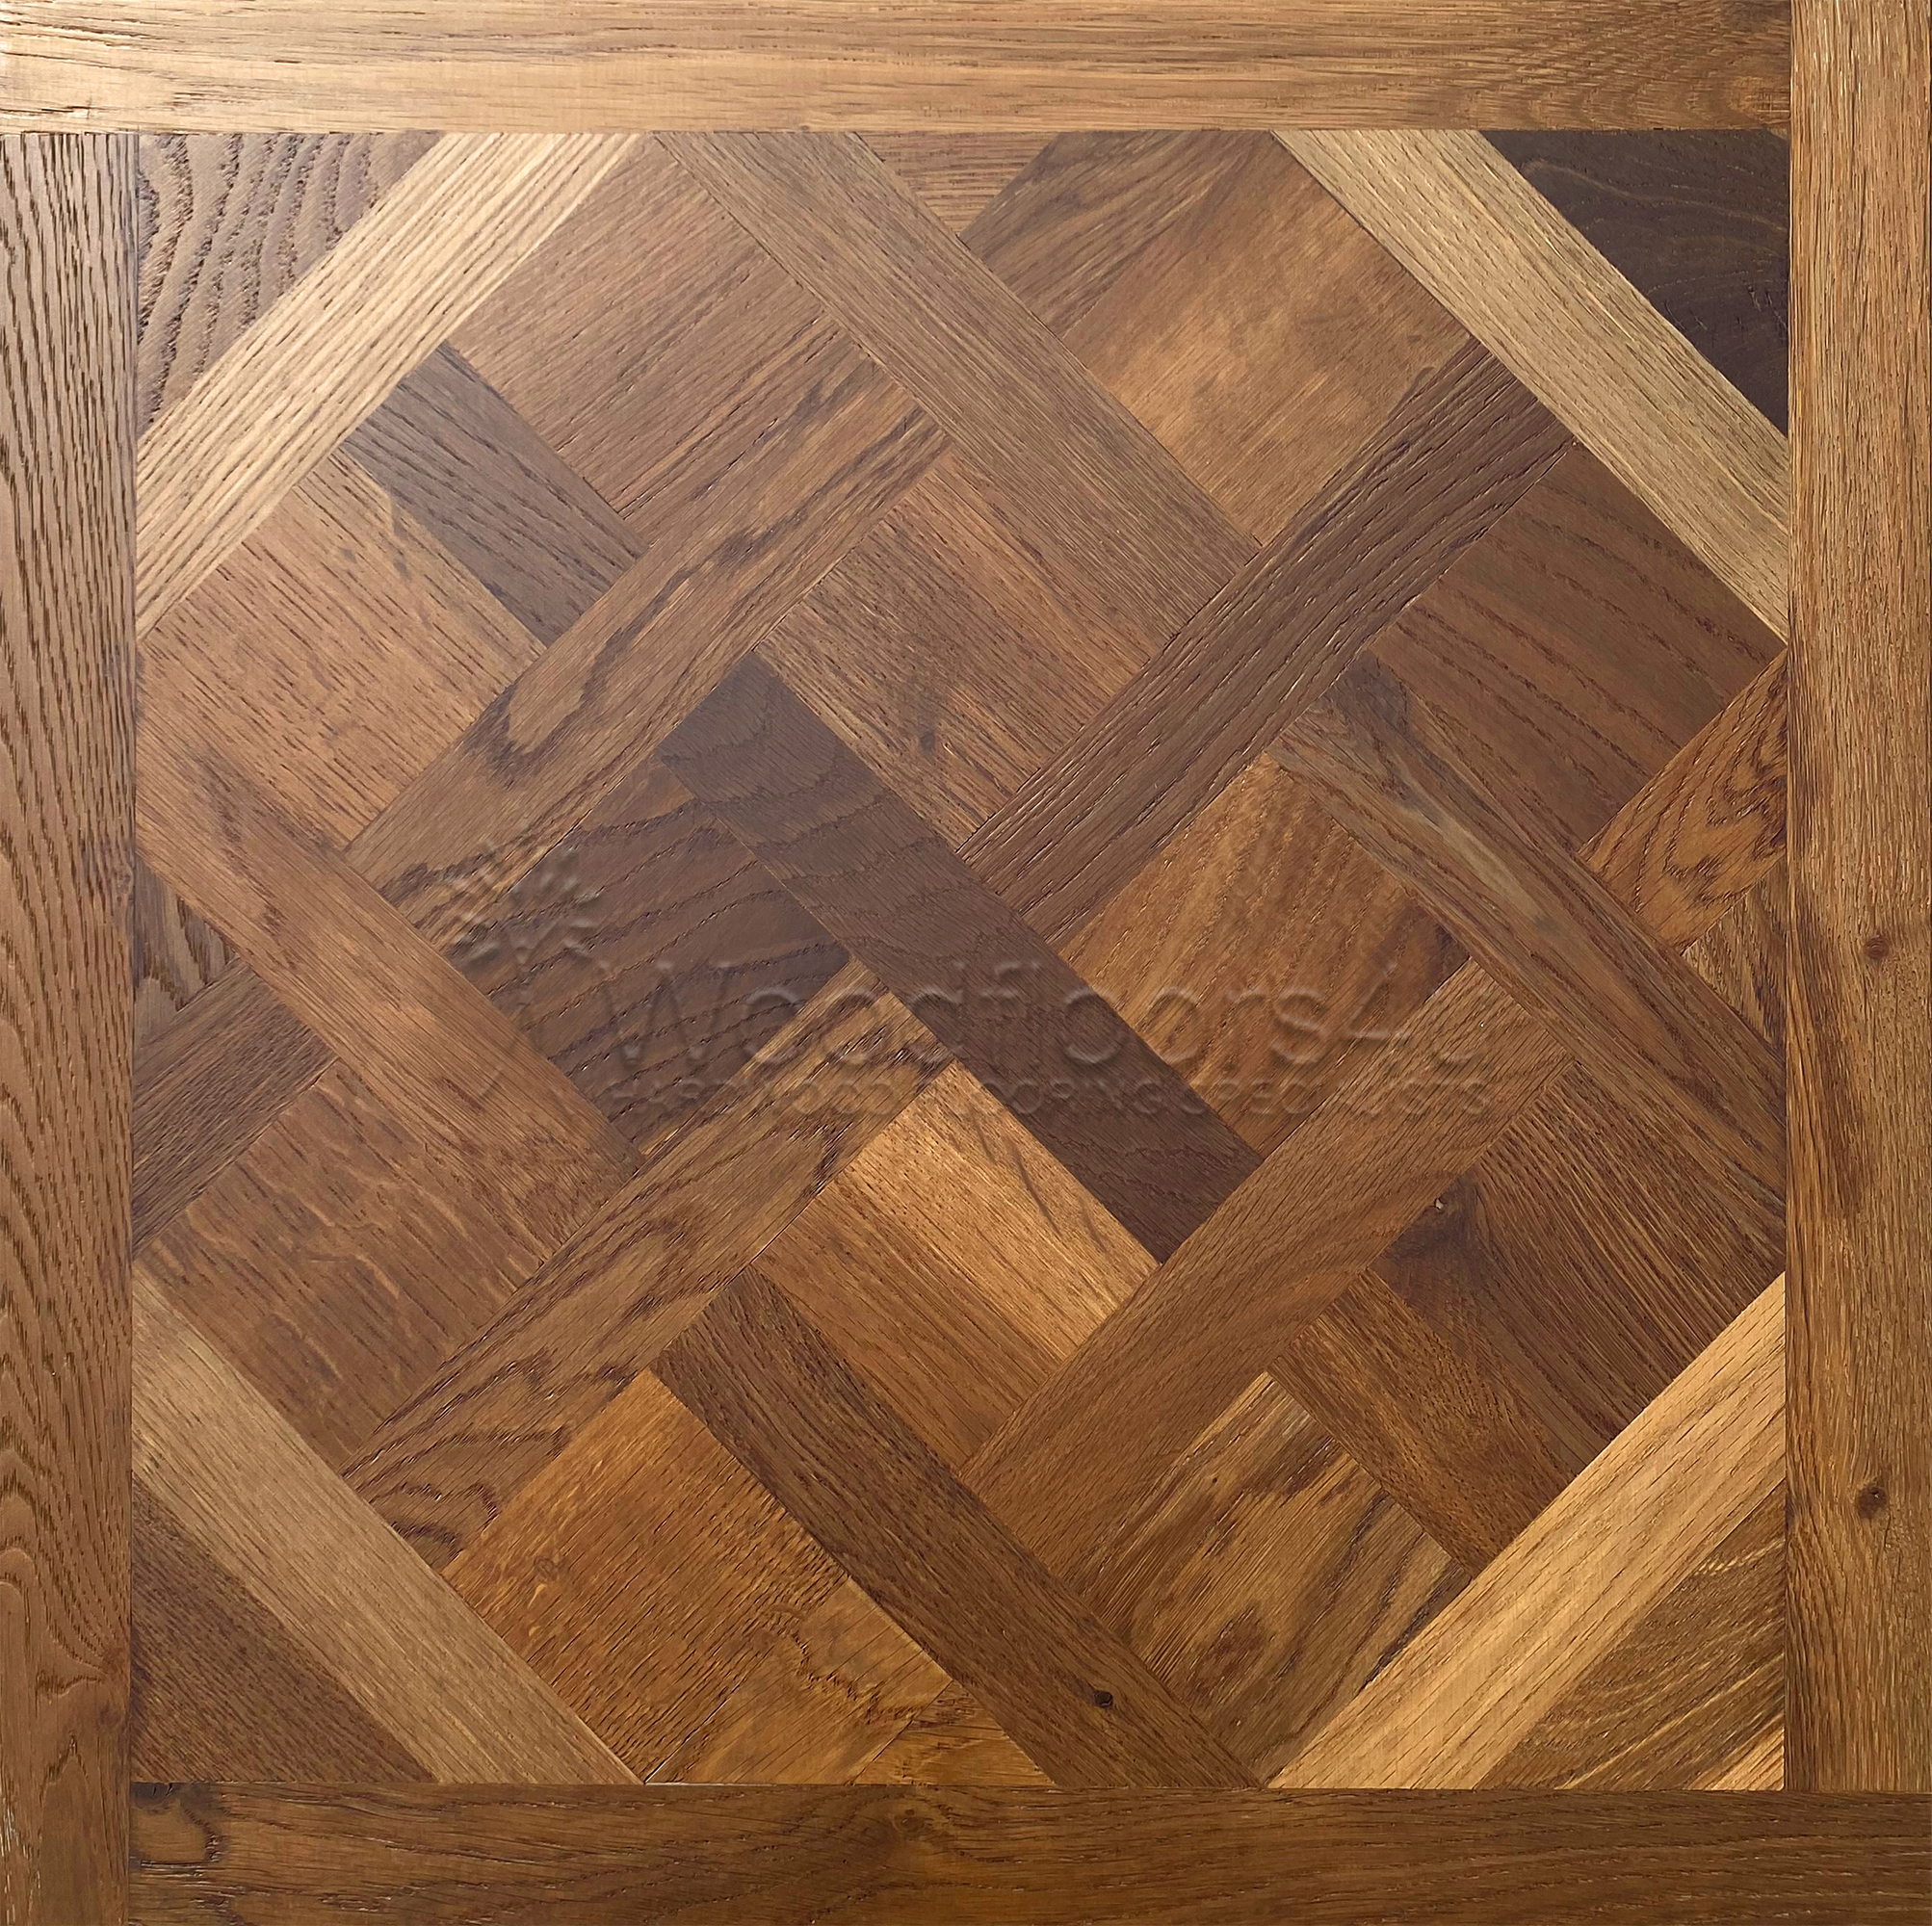 Versailles Wood Flooring: The Story, The Style, The Benefits